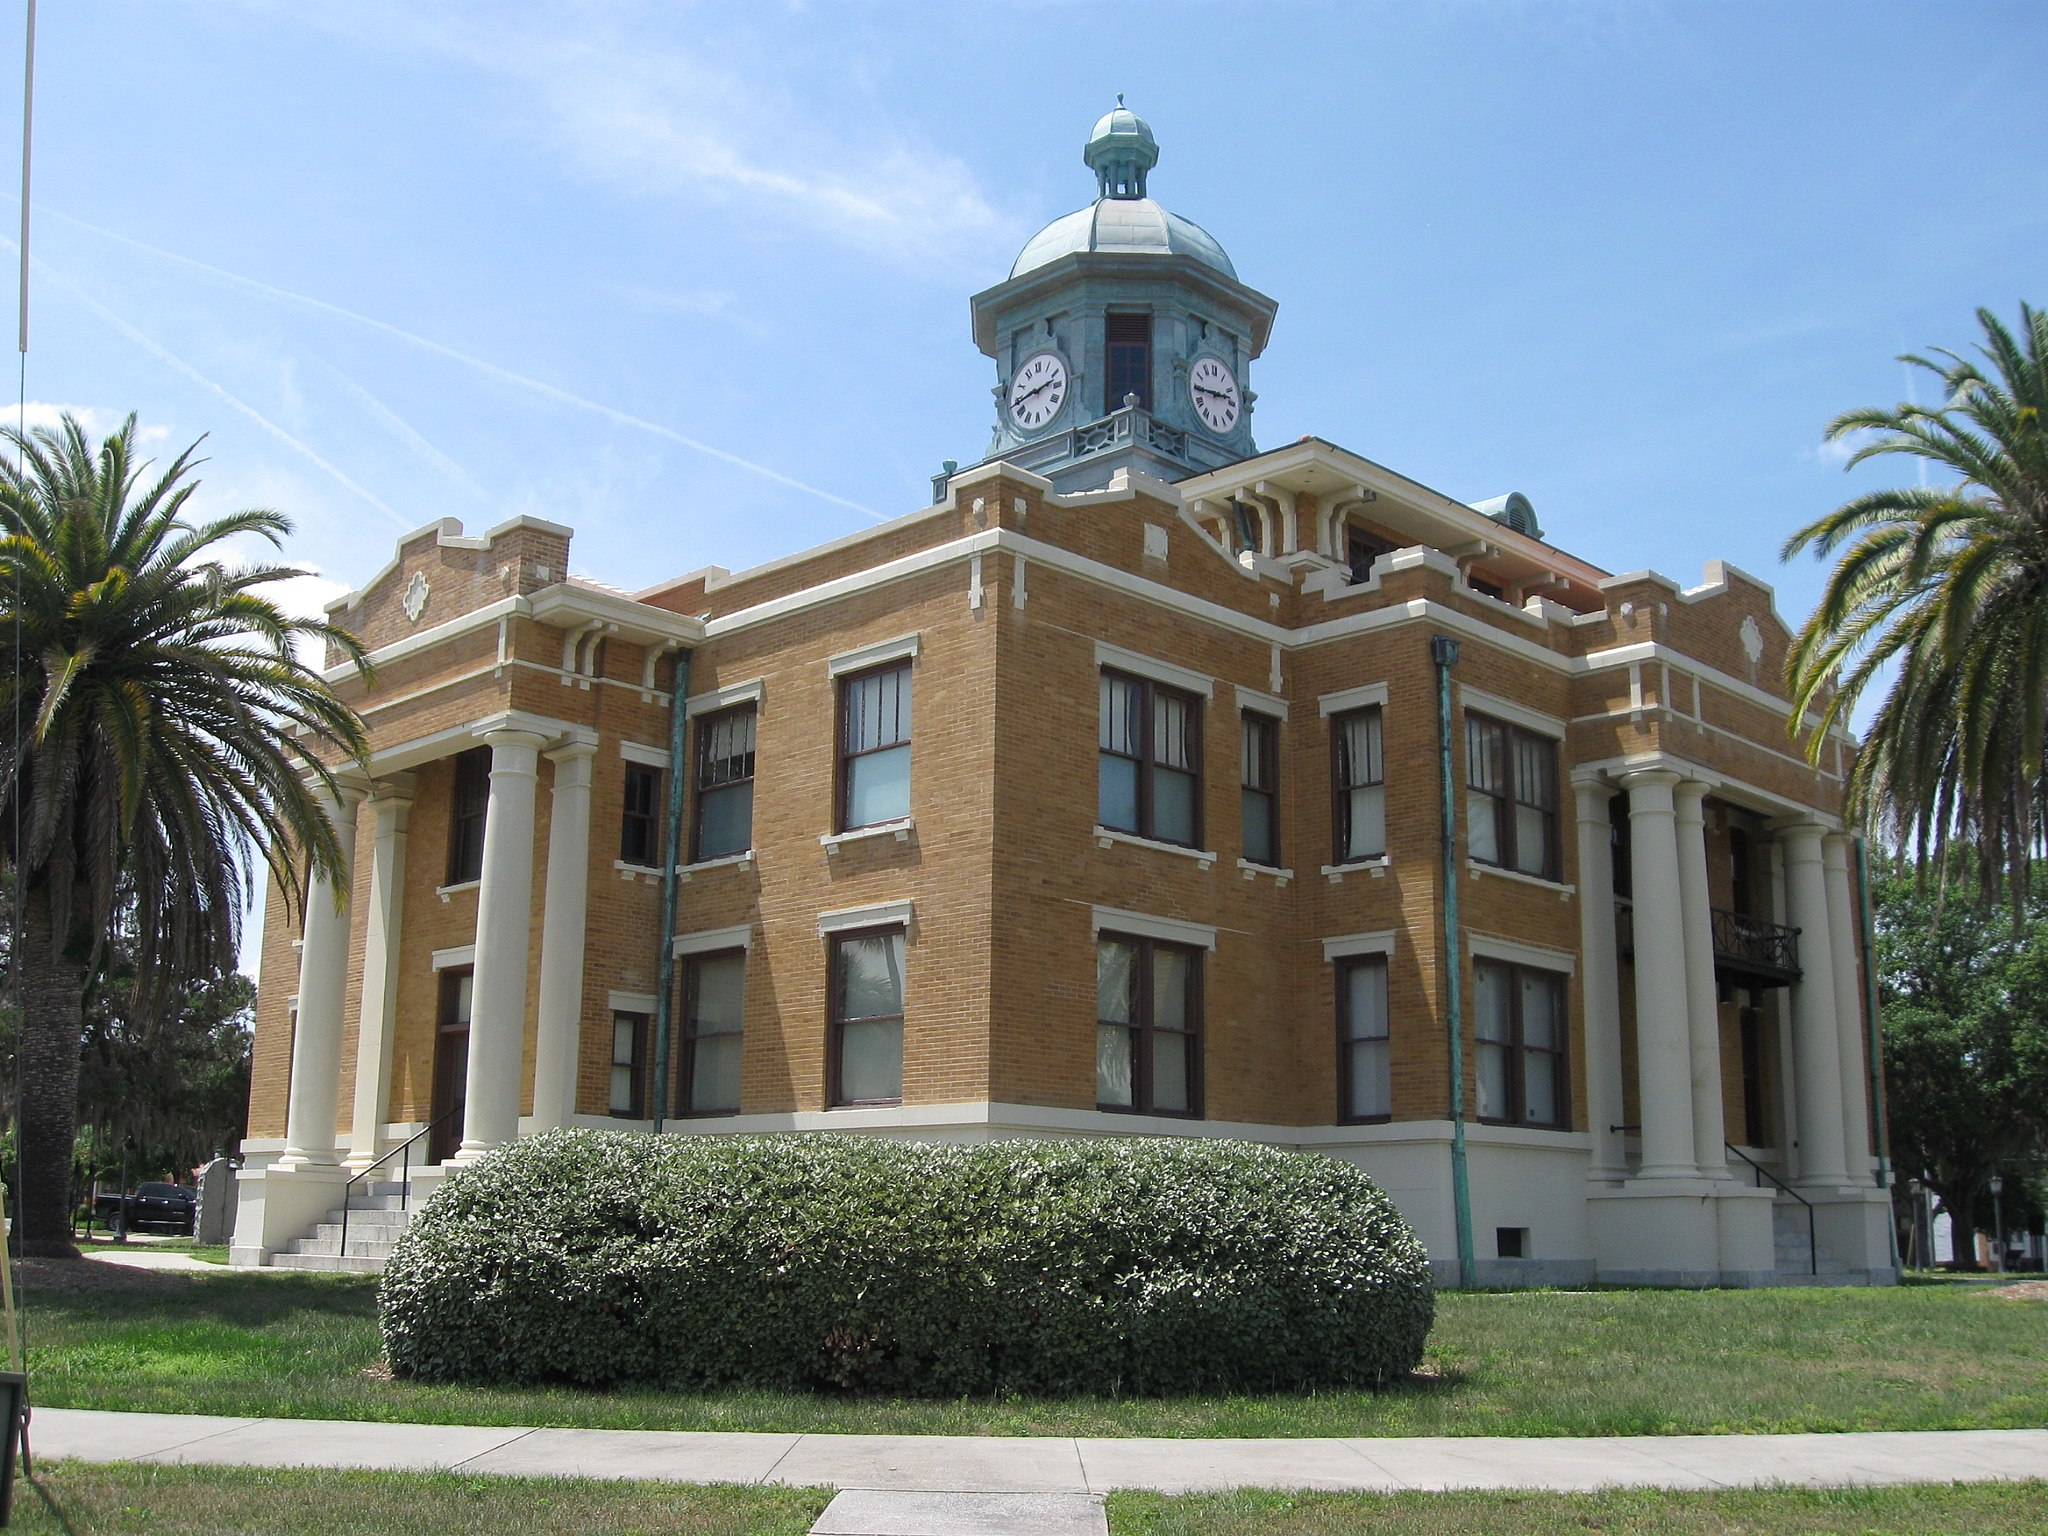 Inverness, FL, Courthouse, Citrus County, Southeast Side, 05-15-2010 (7)